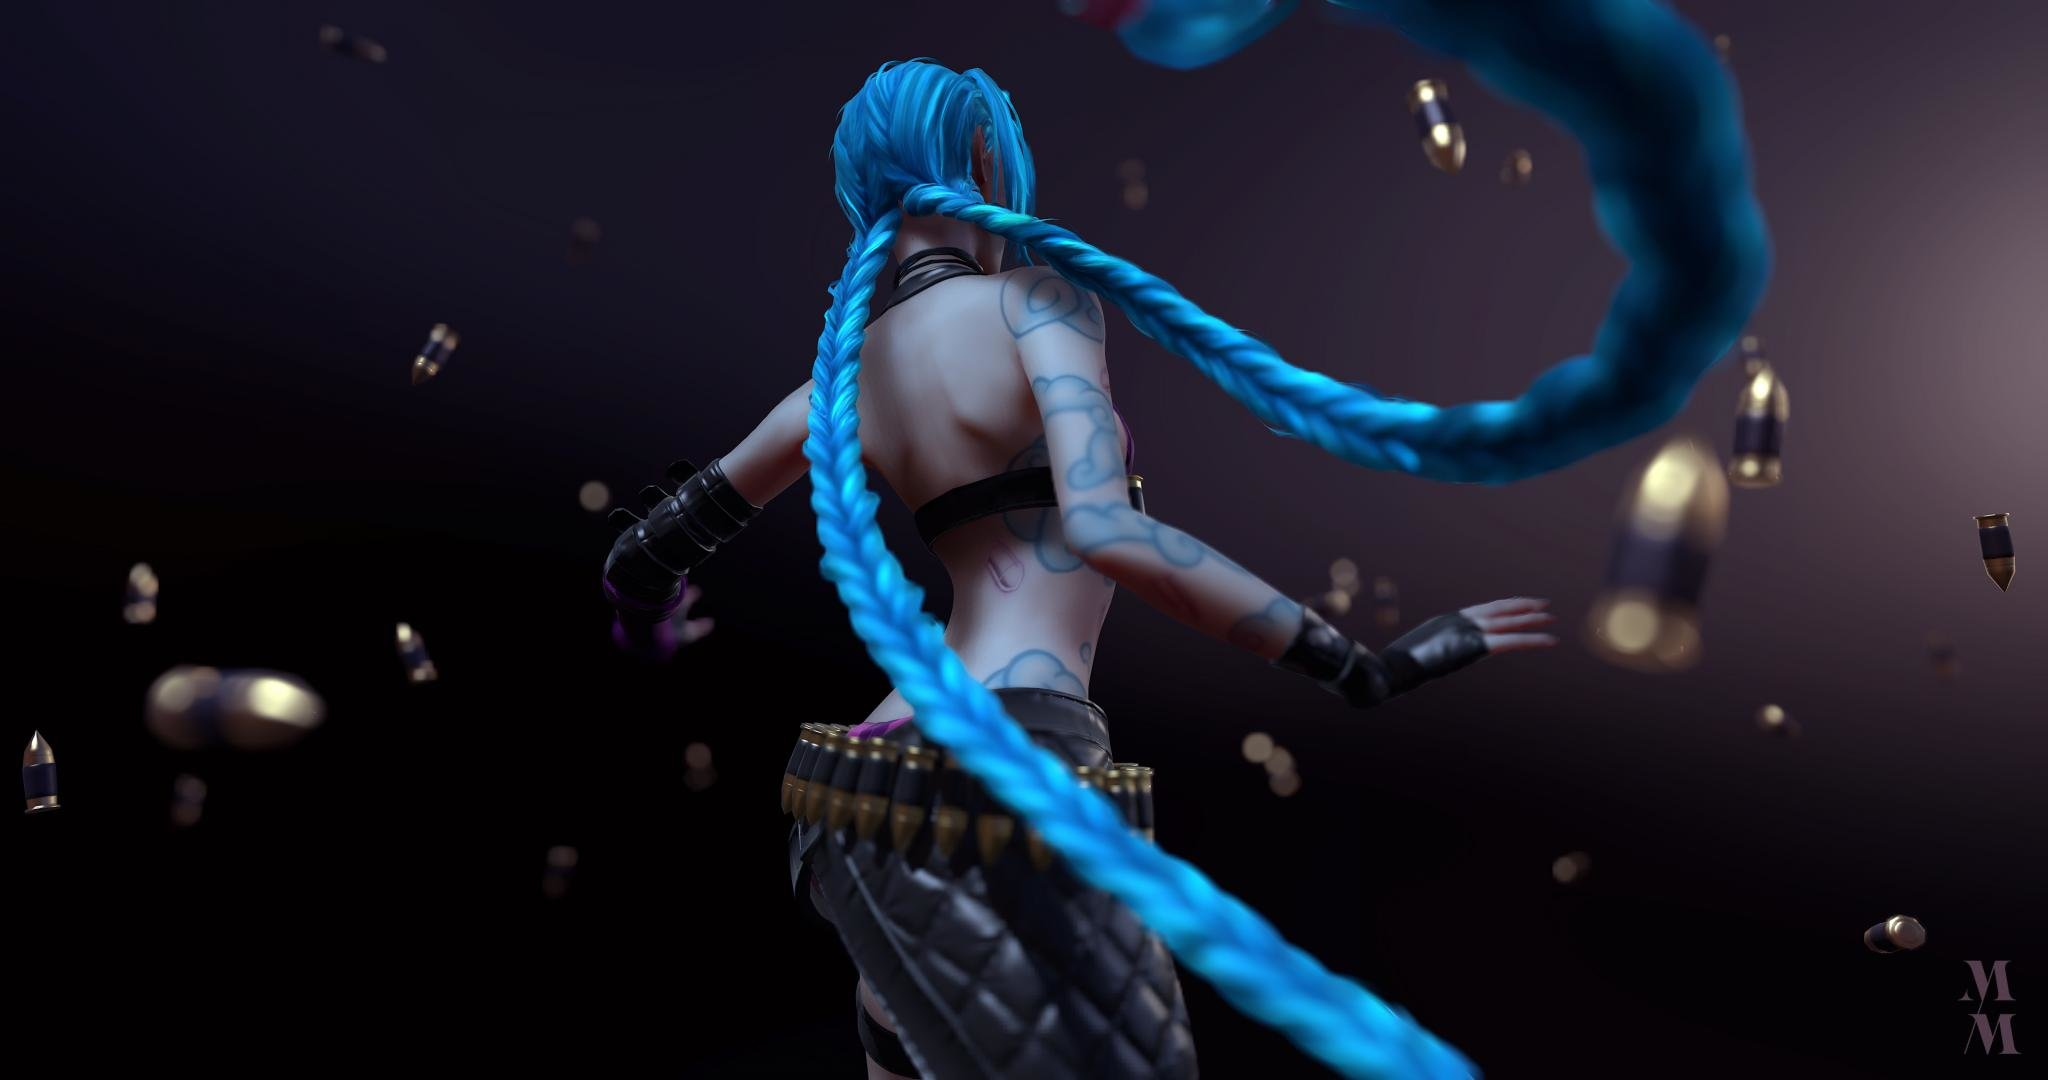 High resolution Jinx (League Of Legends) hd 2048x1080 background ID:170904 for PC